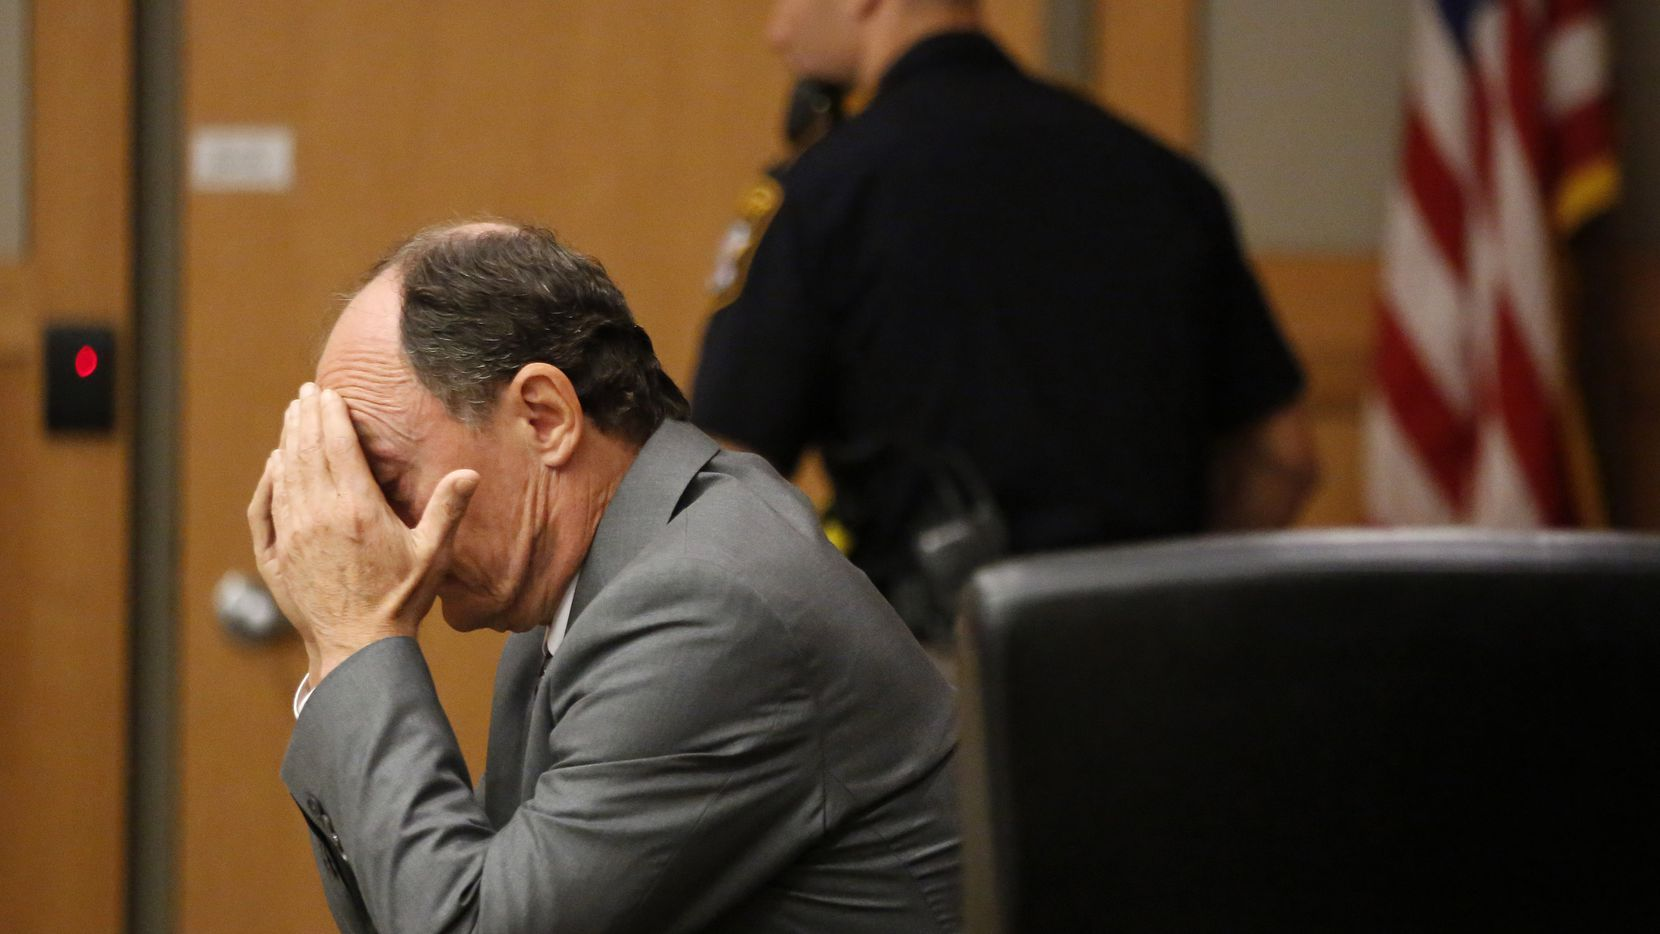 Frisco man gets life sentence for gunning down ex-wife with six-shot barrage